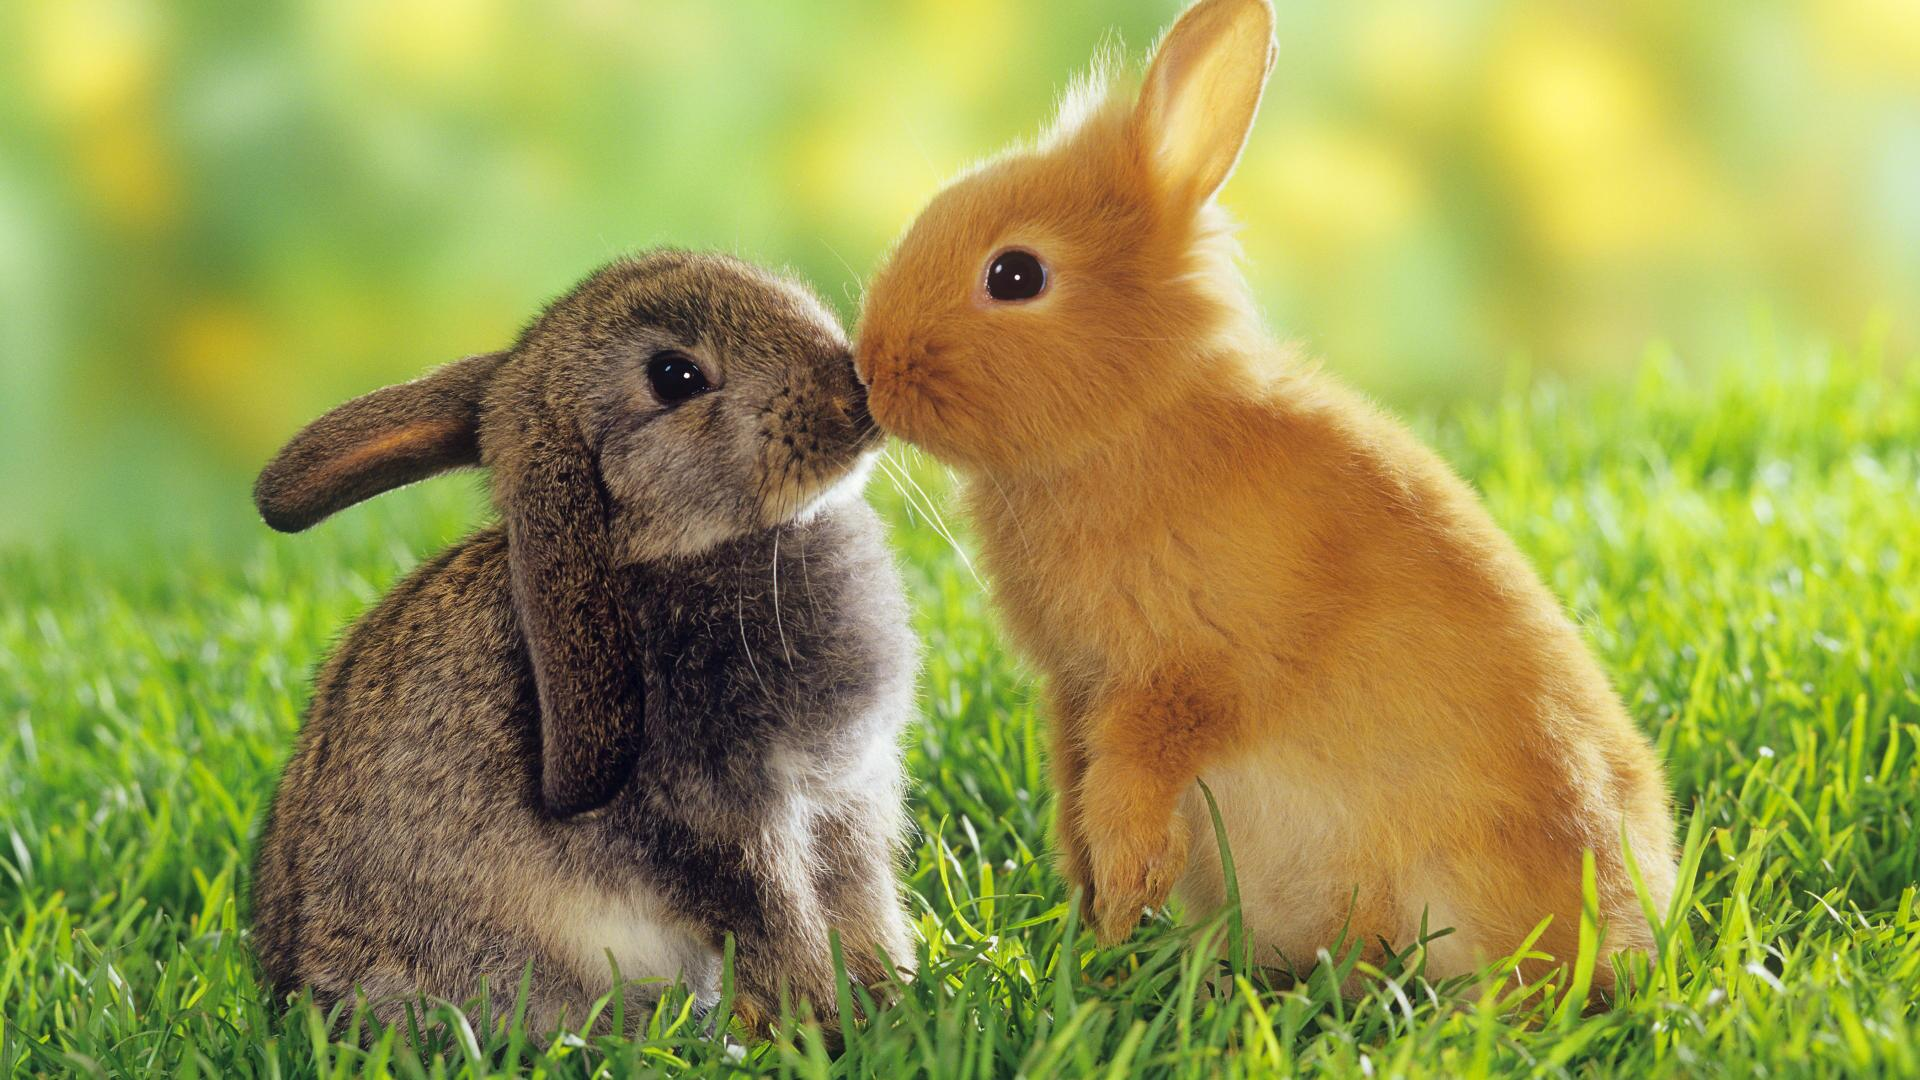 RT @BlakeMichael14: This is a picture of two baby bunnies kissing. Share it around. Have a nice day. http://t.co/WGtVPQ62kp